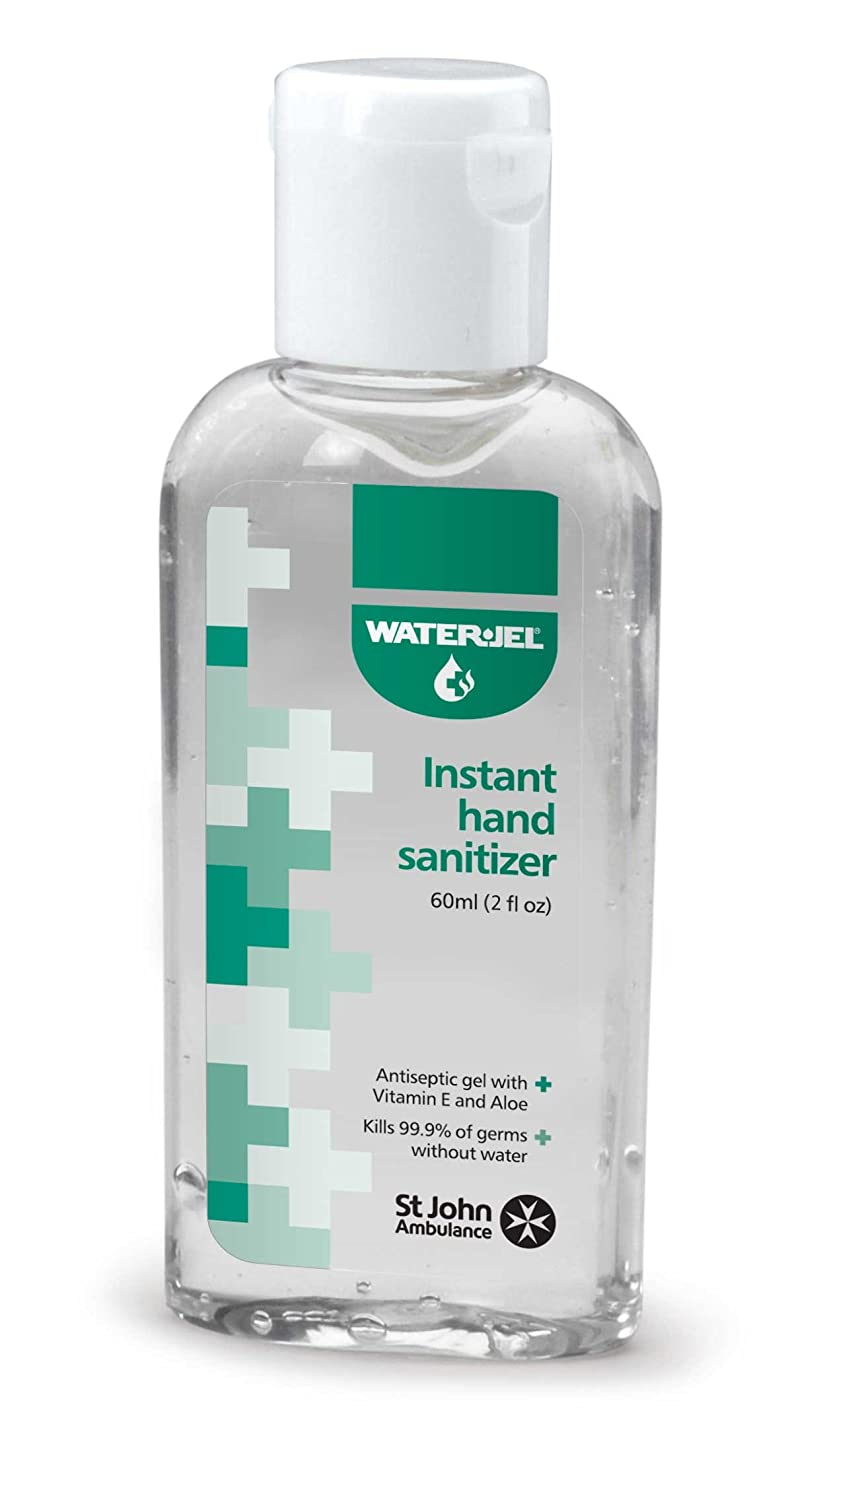 St John Ambulance & Waterjel 60ml Hand Sanitiser Waterjel & St John Ambulance SJA75070